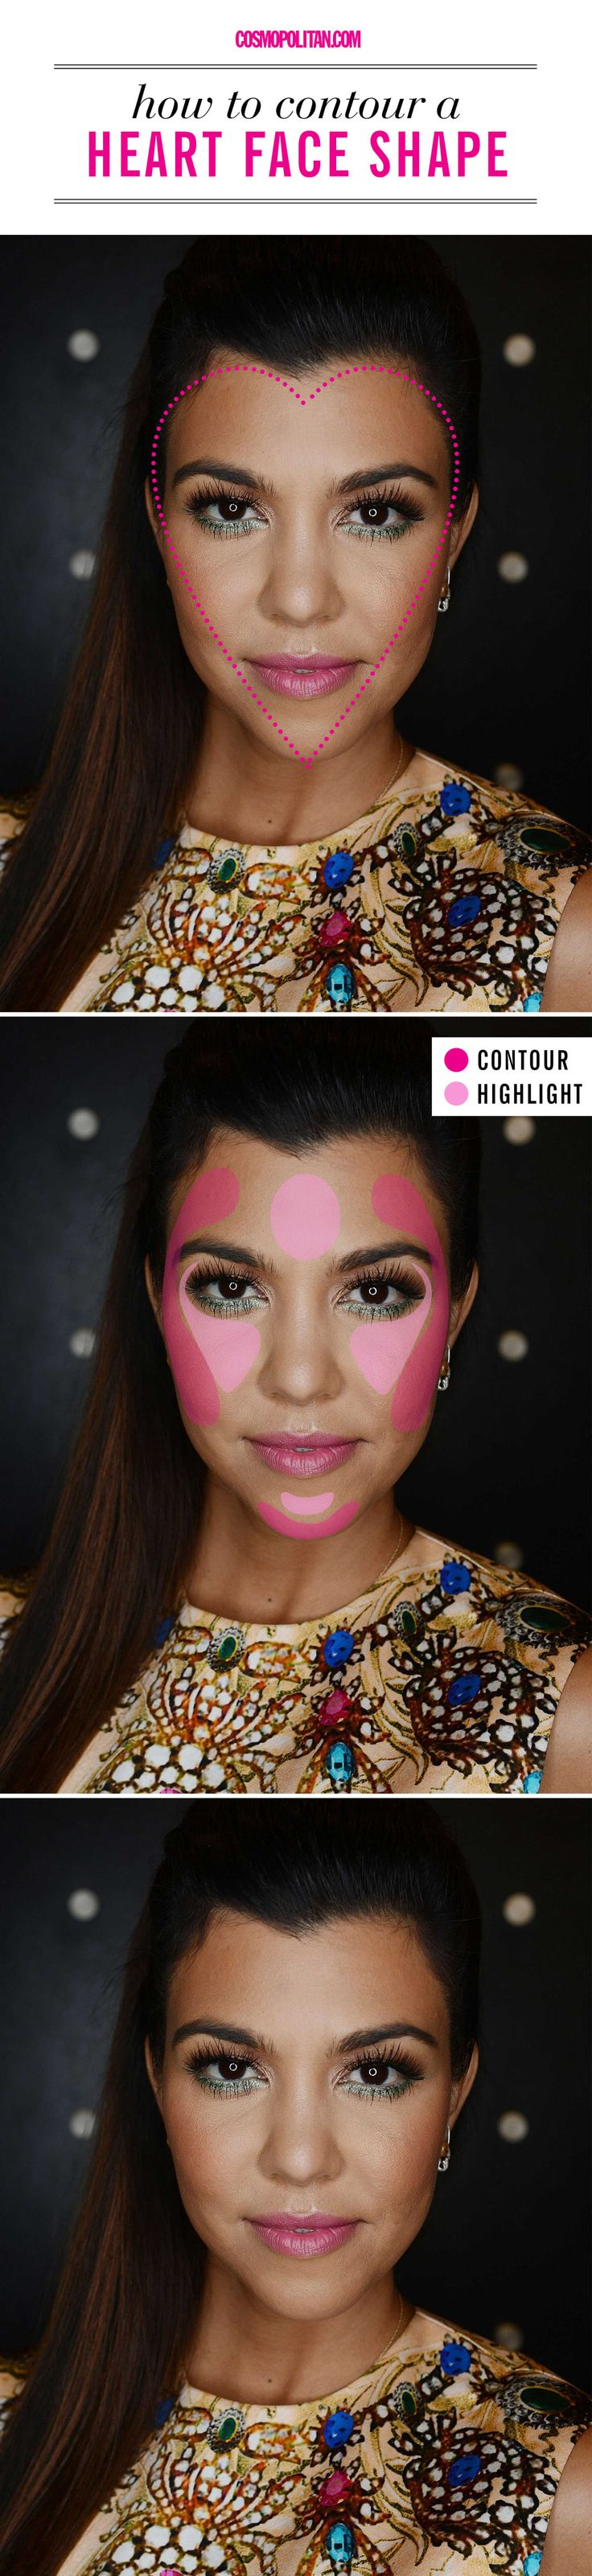 Click on the link - Contour Maps for Every Face Shape - The Right Way to Contour for Your Face Shape